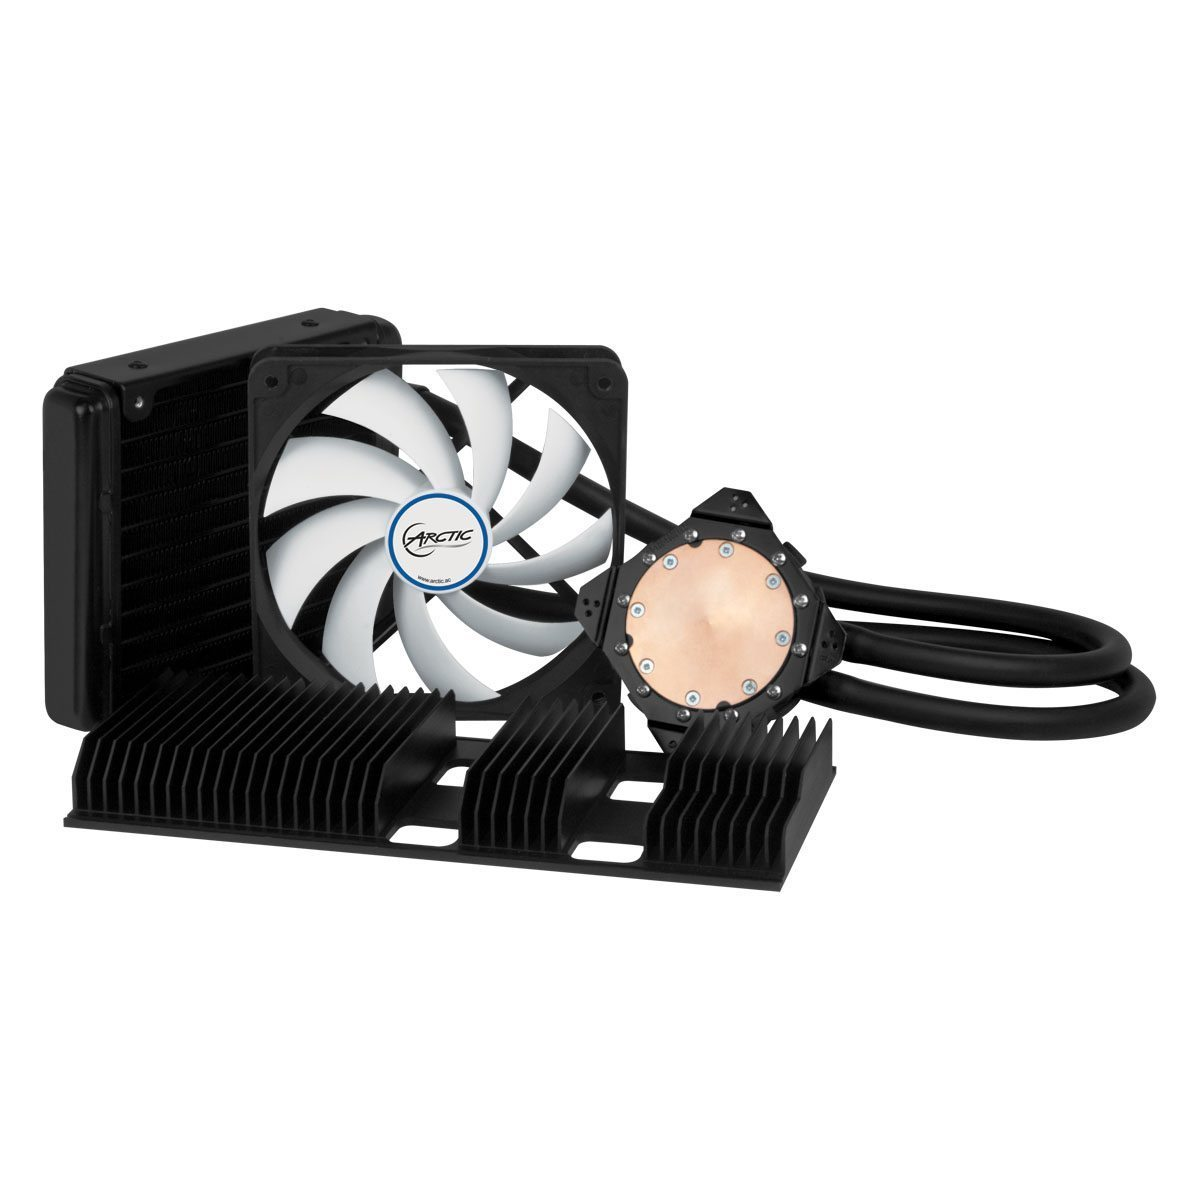 Accelero Hybrid II - 120 Water+Air VGA Cooling